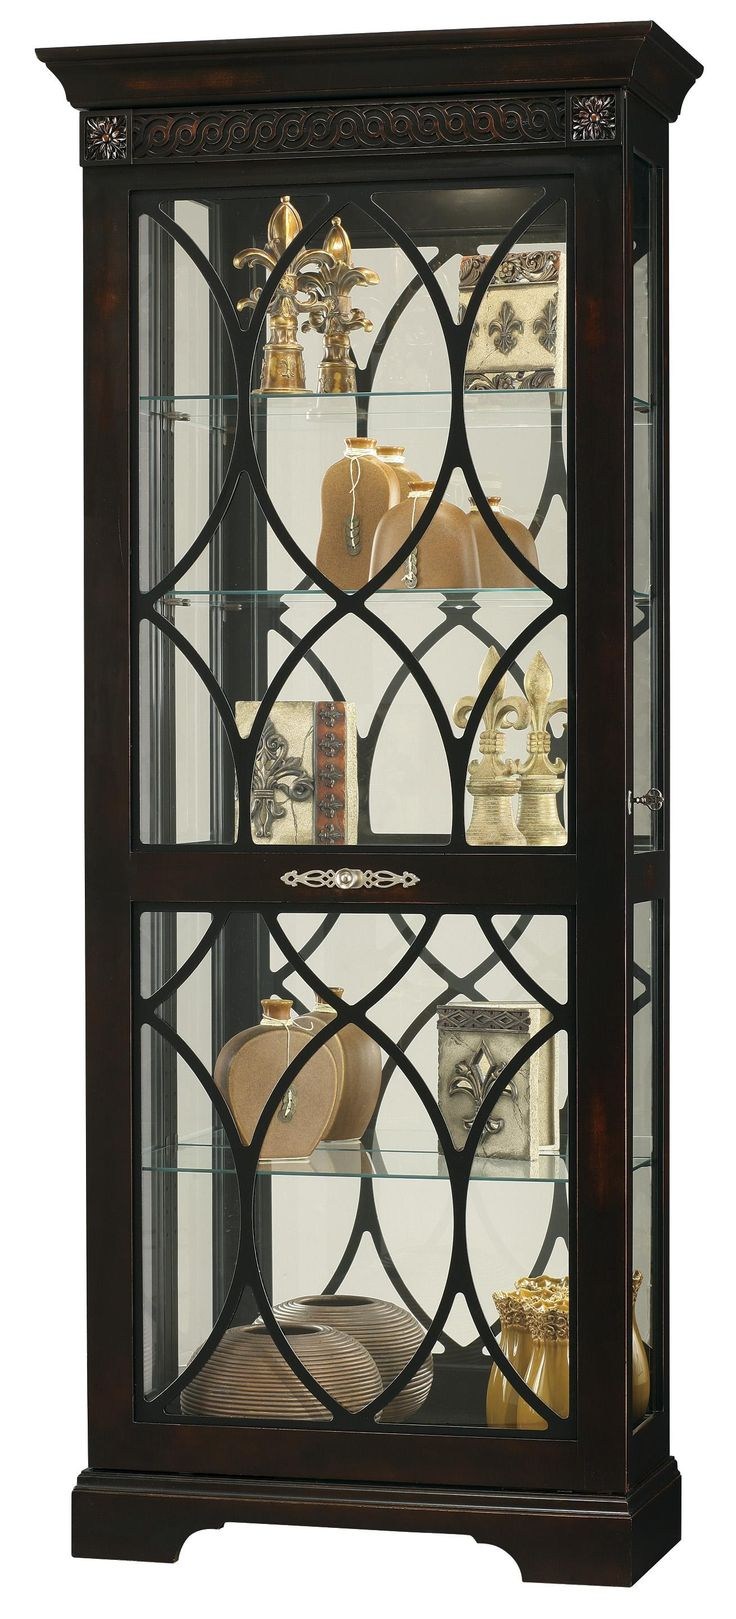 Glass Curio Cabinets With Lights 165 Best Images About Curio Cabinets On Pinterest Glass Curio